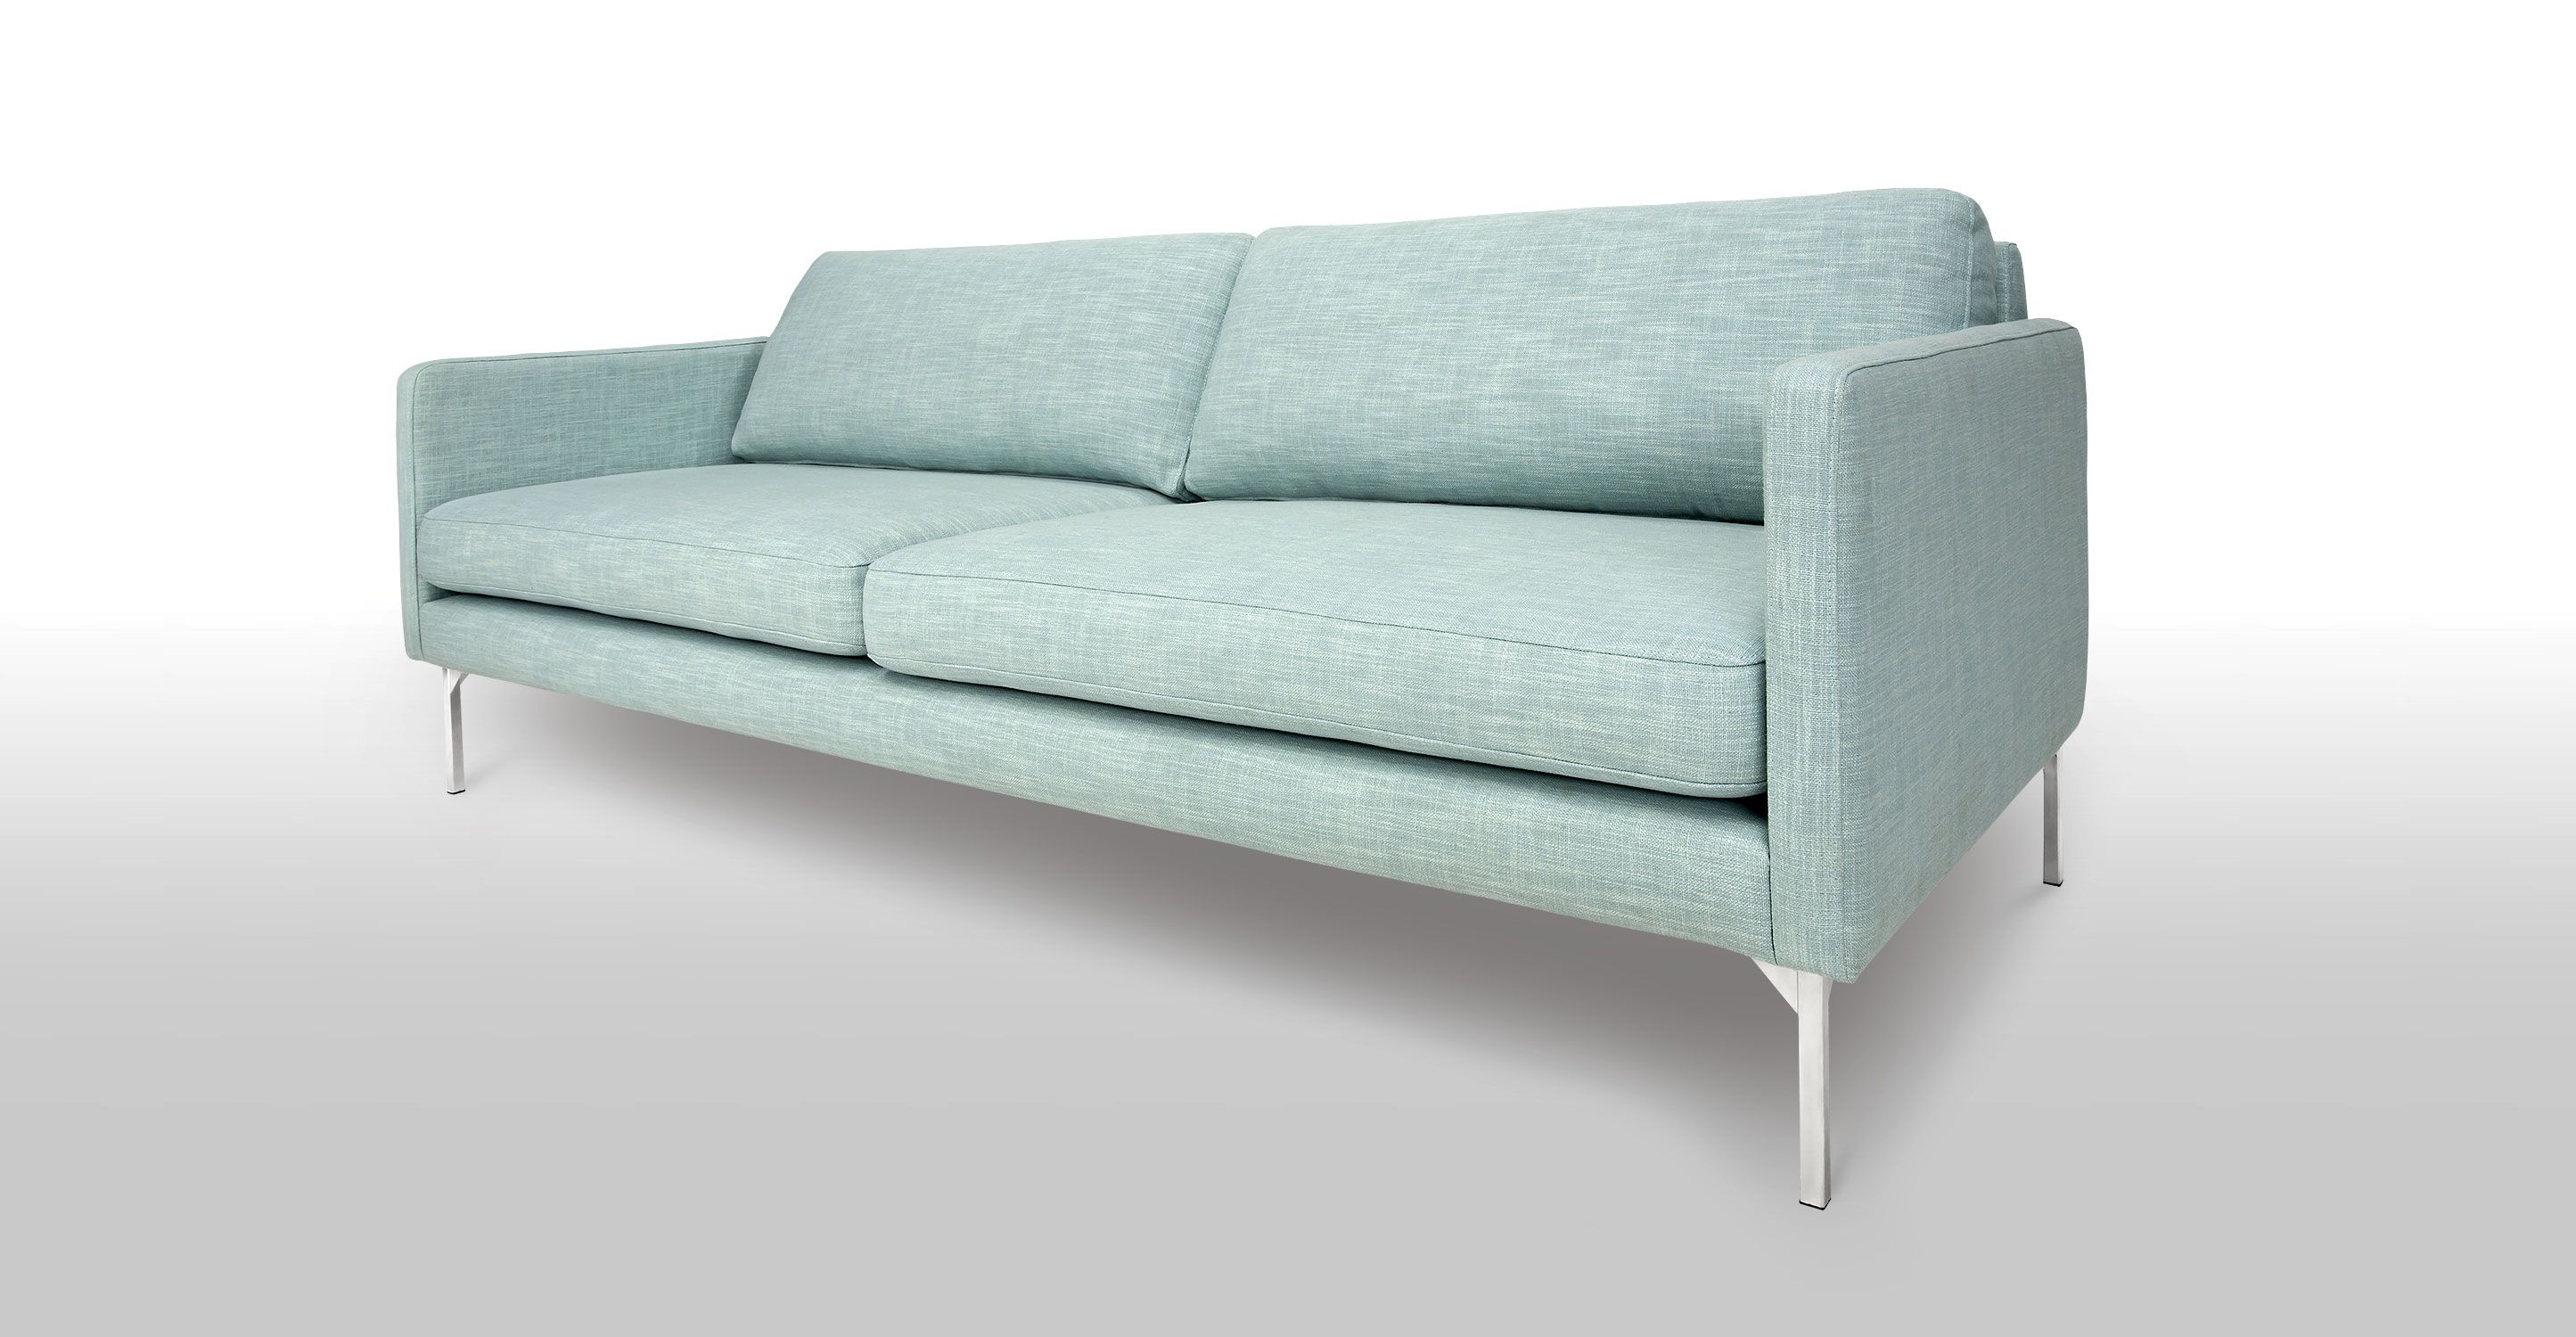 Aqua Blue Sofa 3 Seater Steel Legs